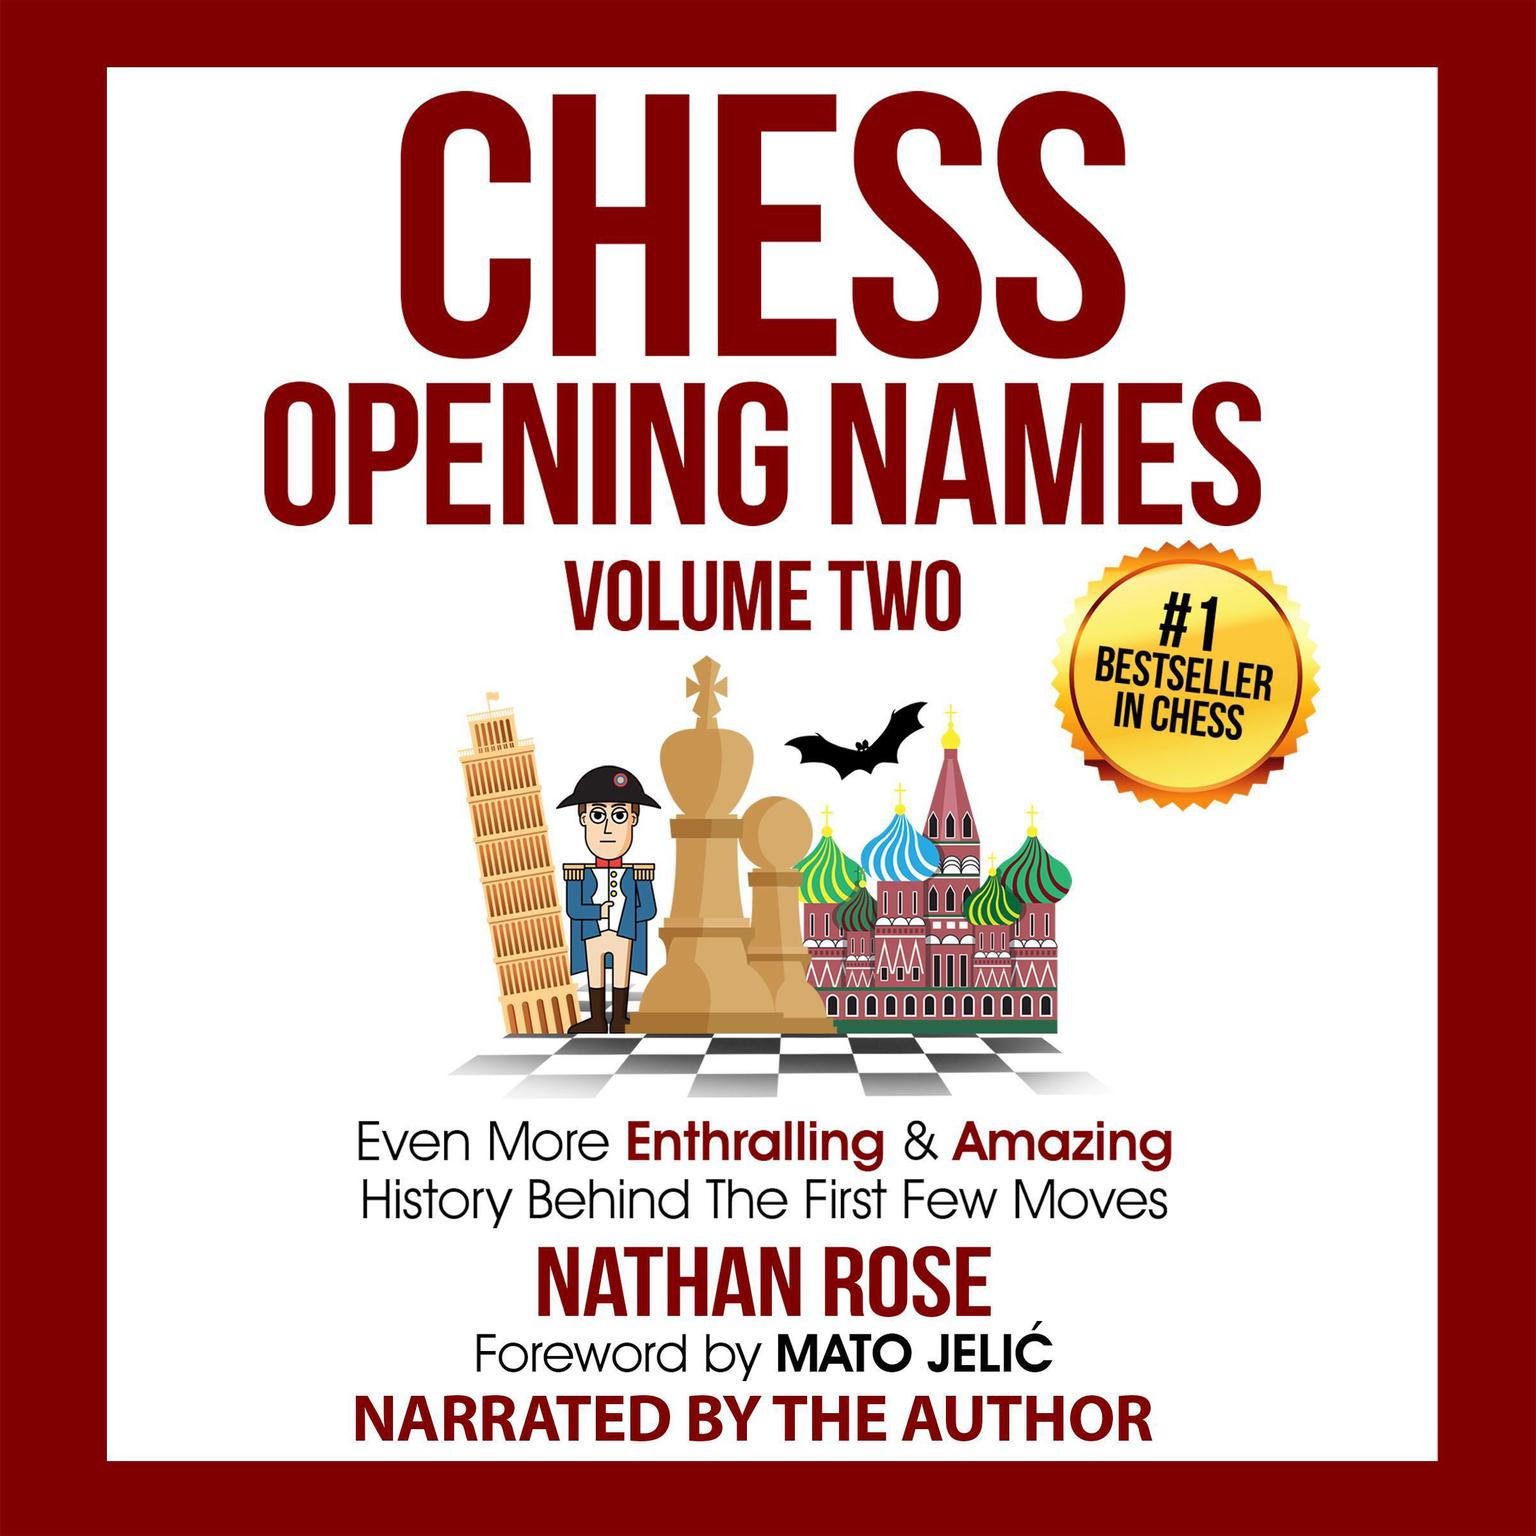 Chess Opening Names - Volume 2: Even More Enthralling & Amazing History Behind The First Few Moves  Audiobook, by Nathan Rose